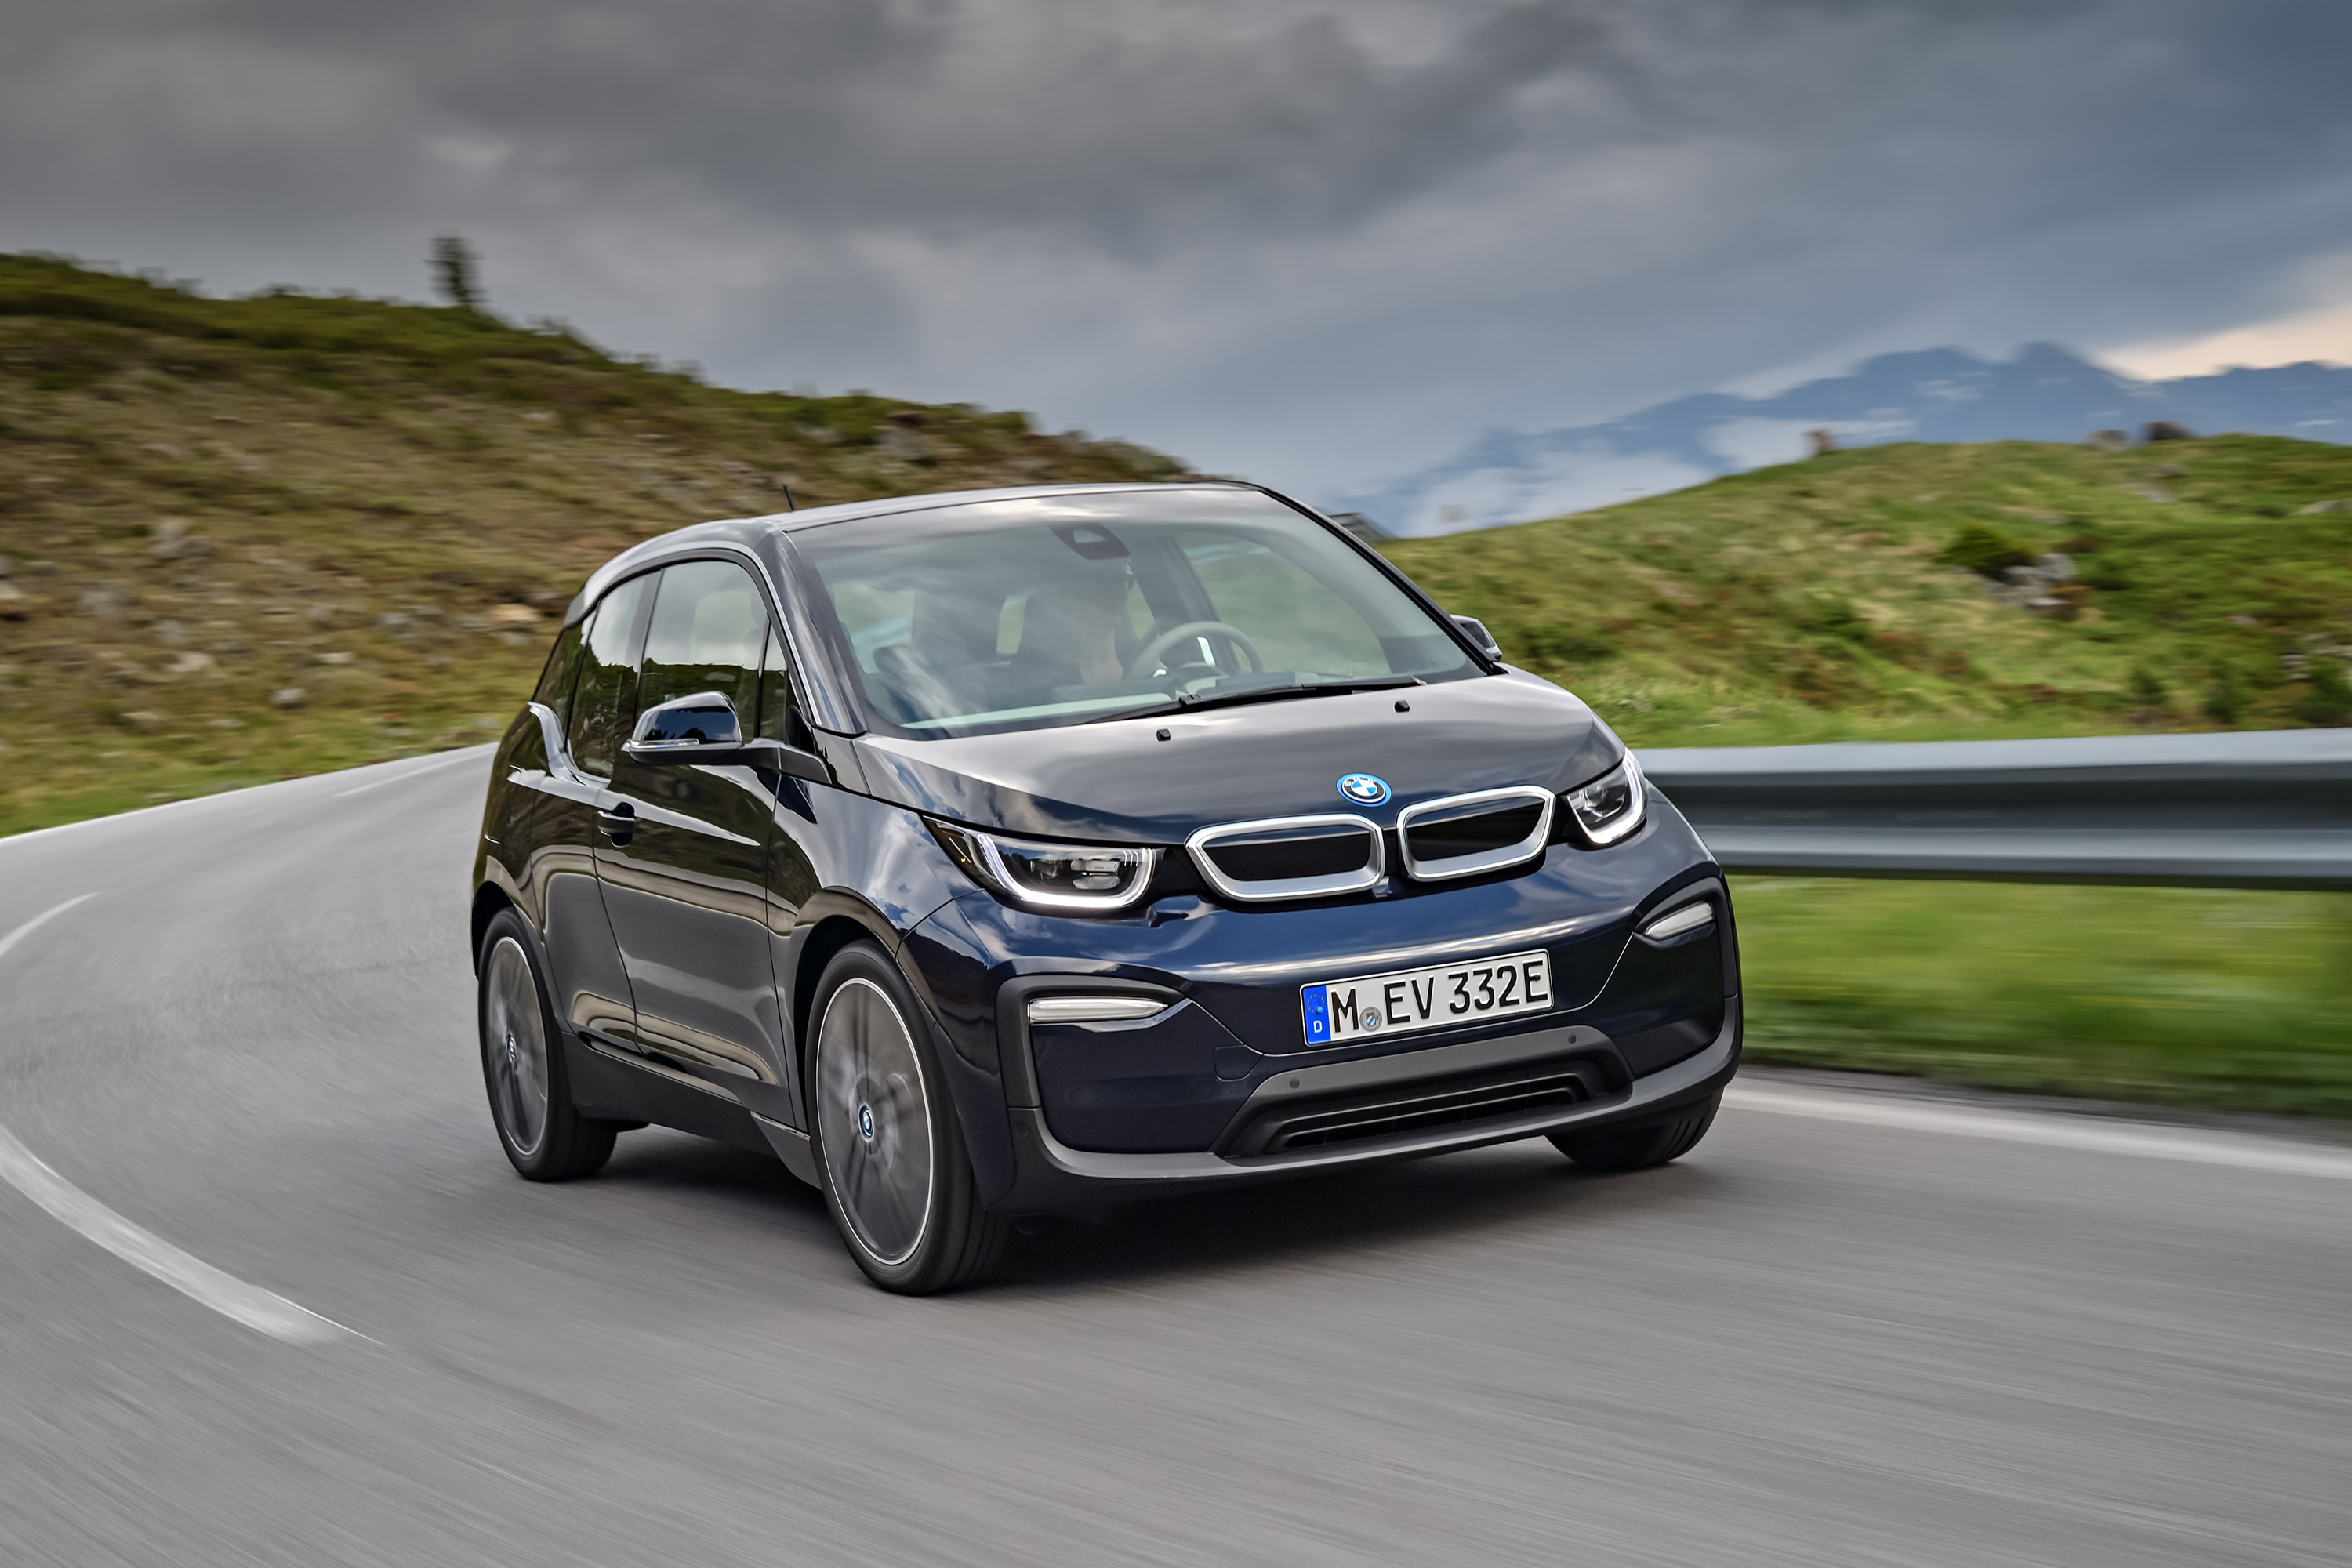 story at concept unveils bmwi s the car future i electric ta a tesla fighting last bmw is price sedan dynamics vision for